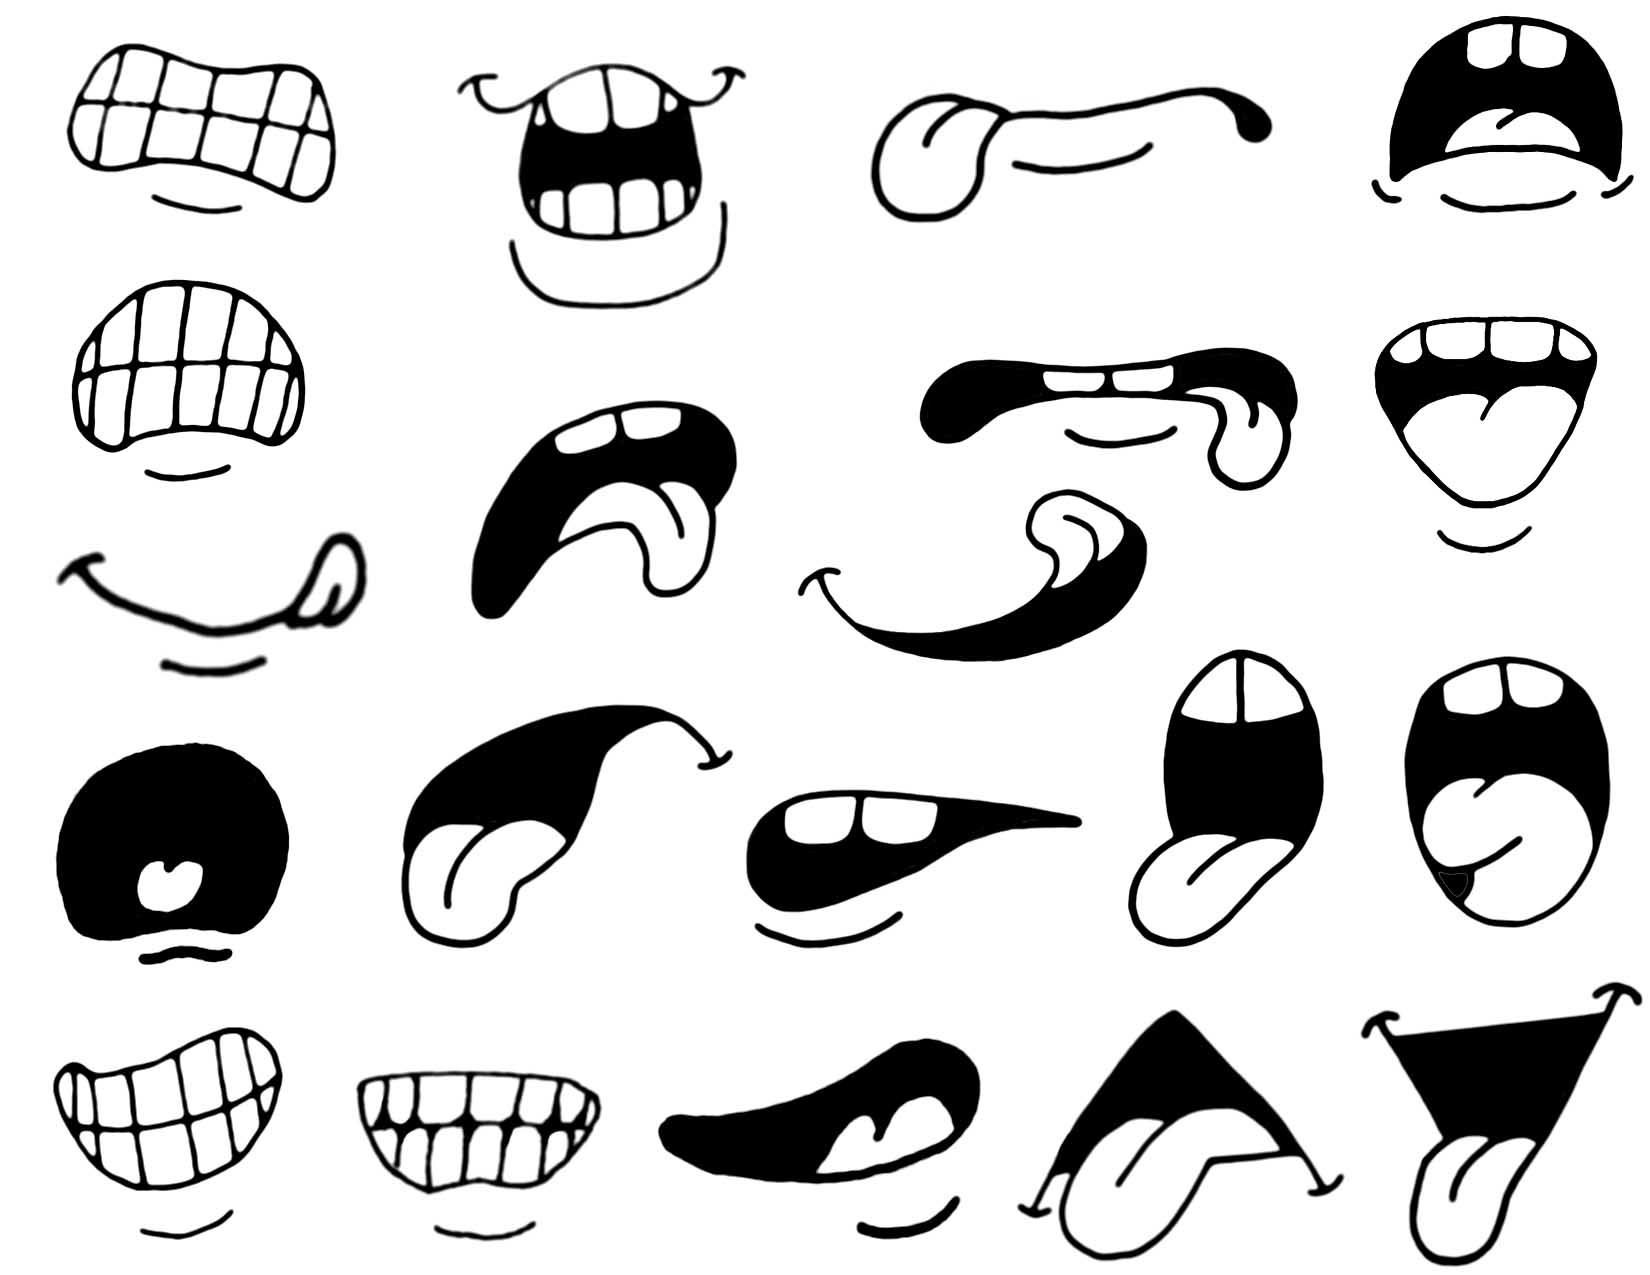 Lips clipart anamated. Intermediate mouths slightly more